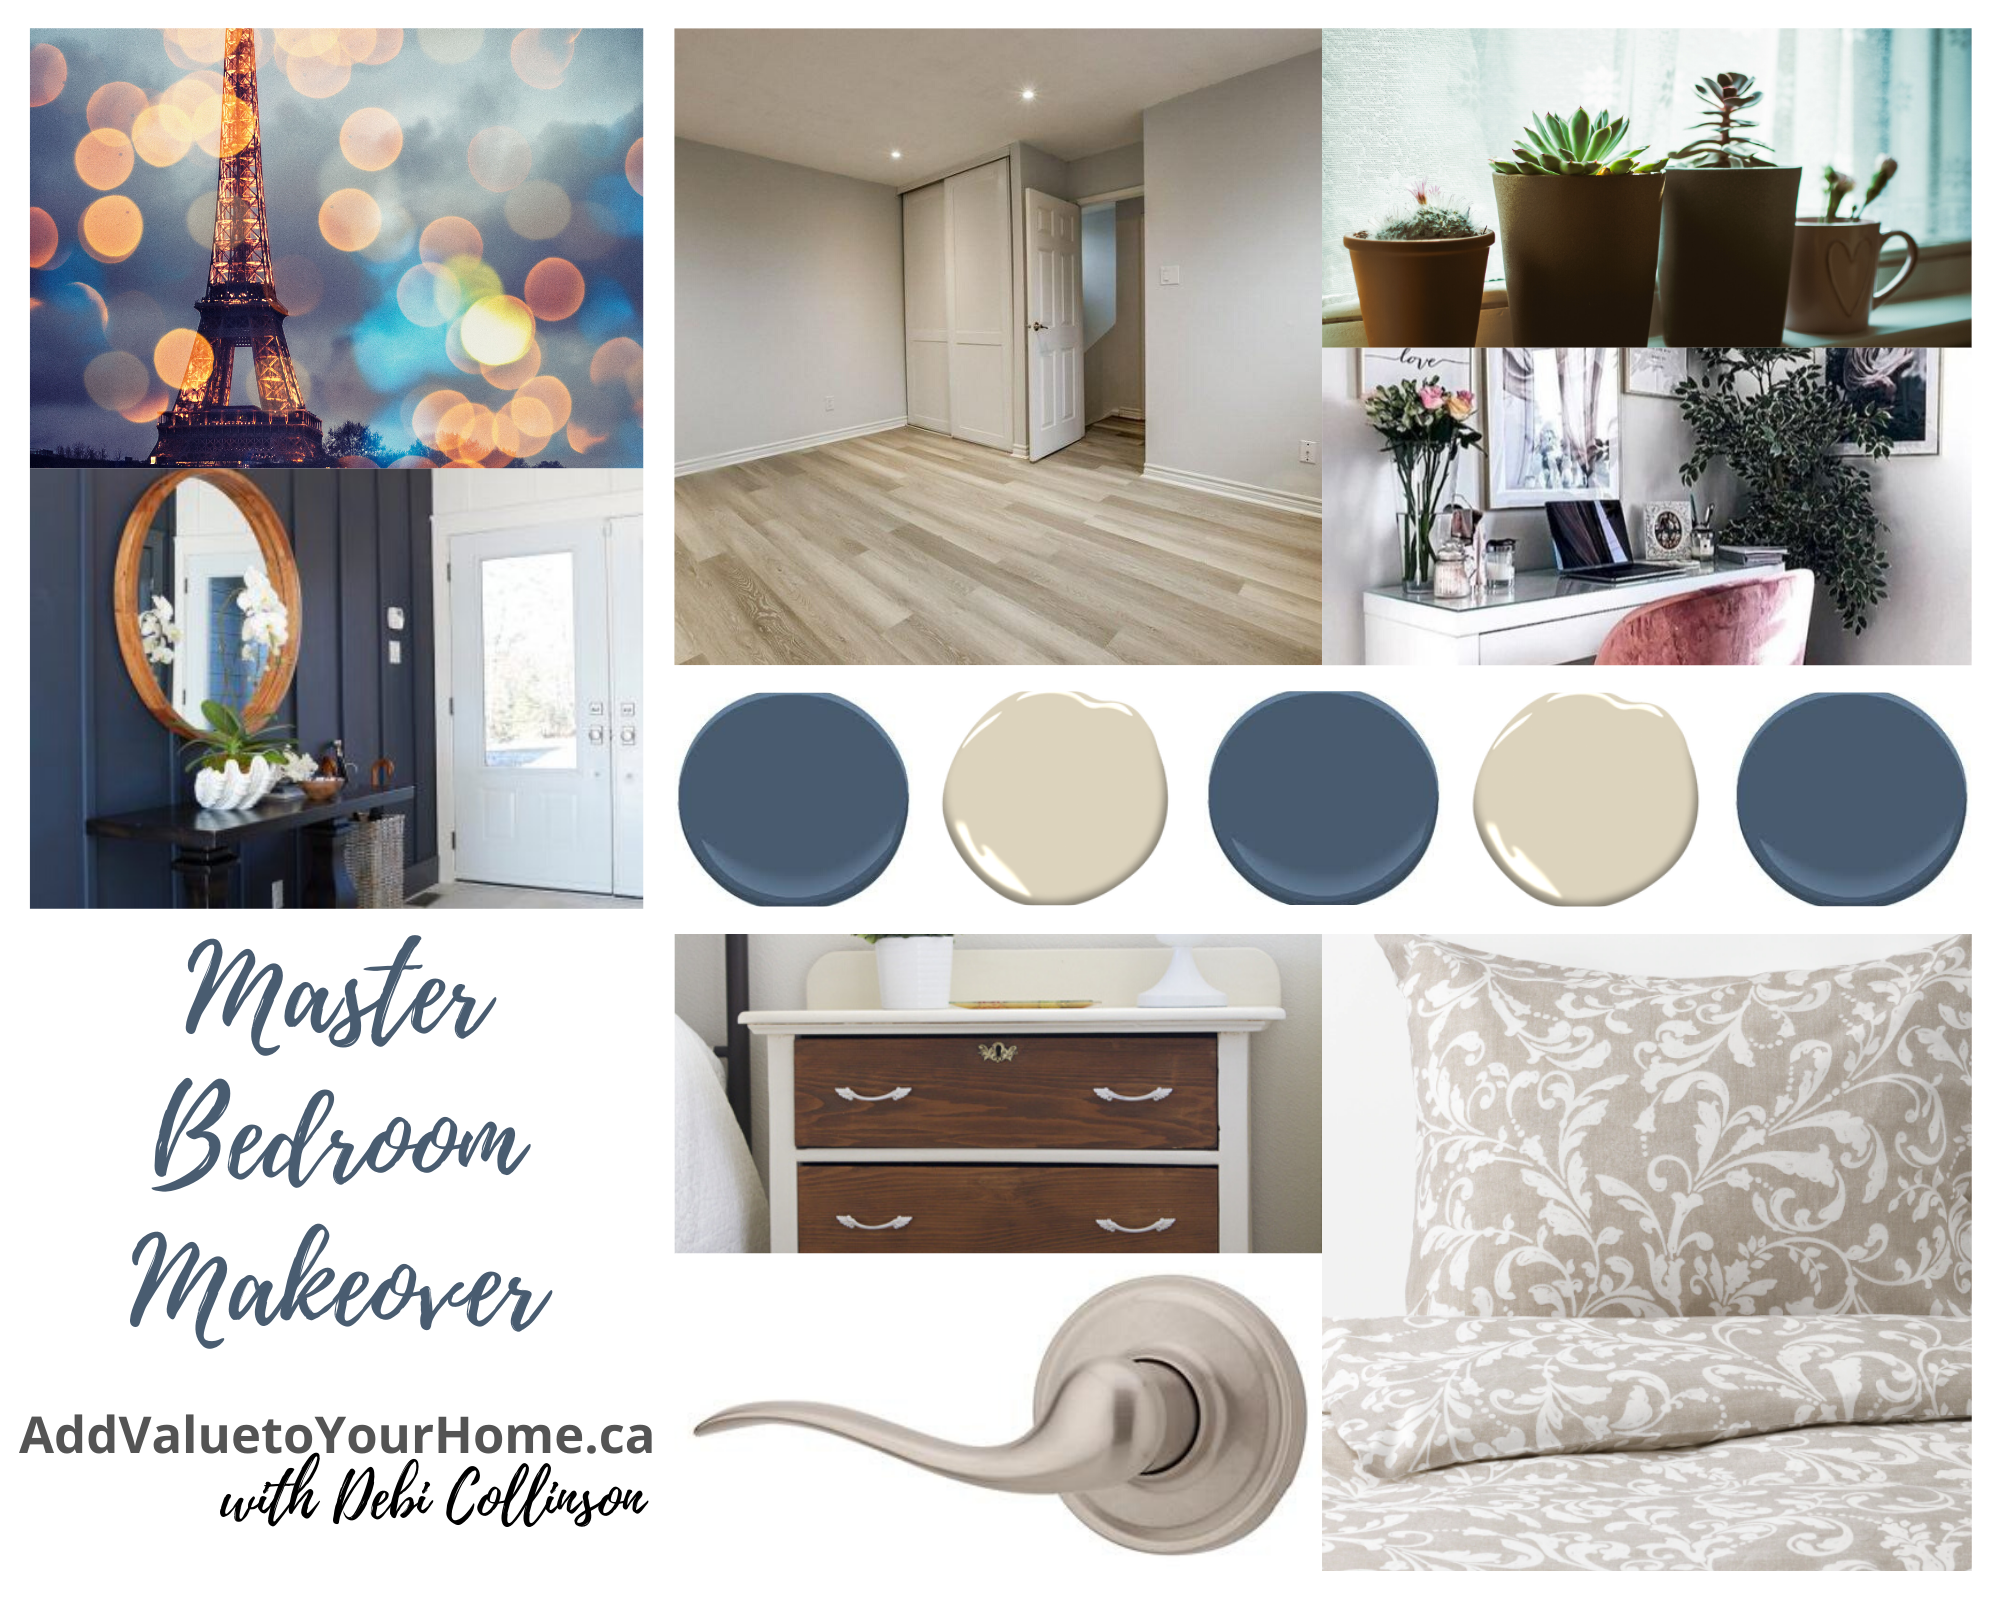 Master Bedroom Makeover - Add Value to Your Home with Debi Collinson